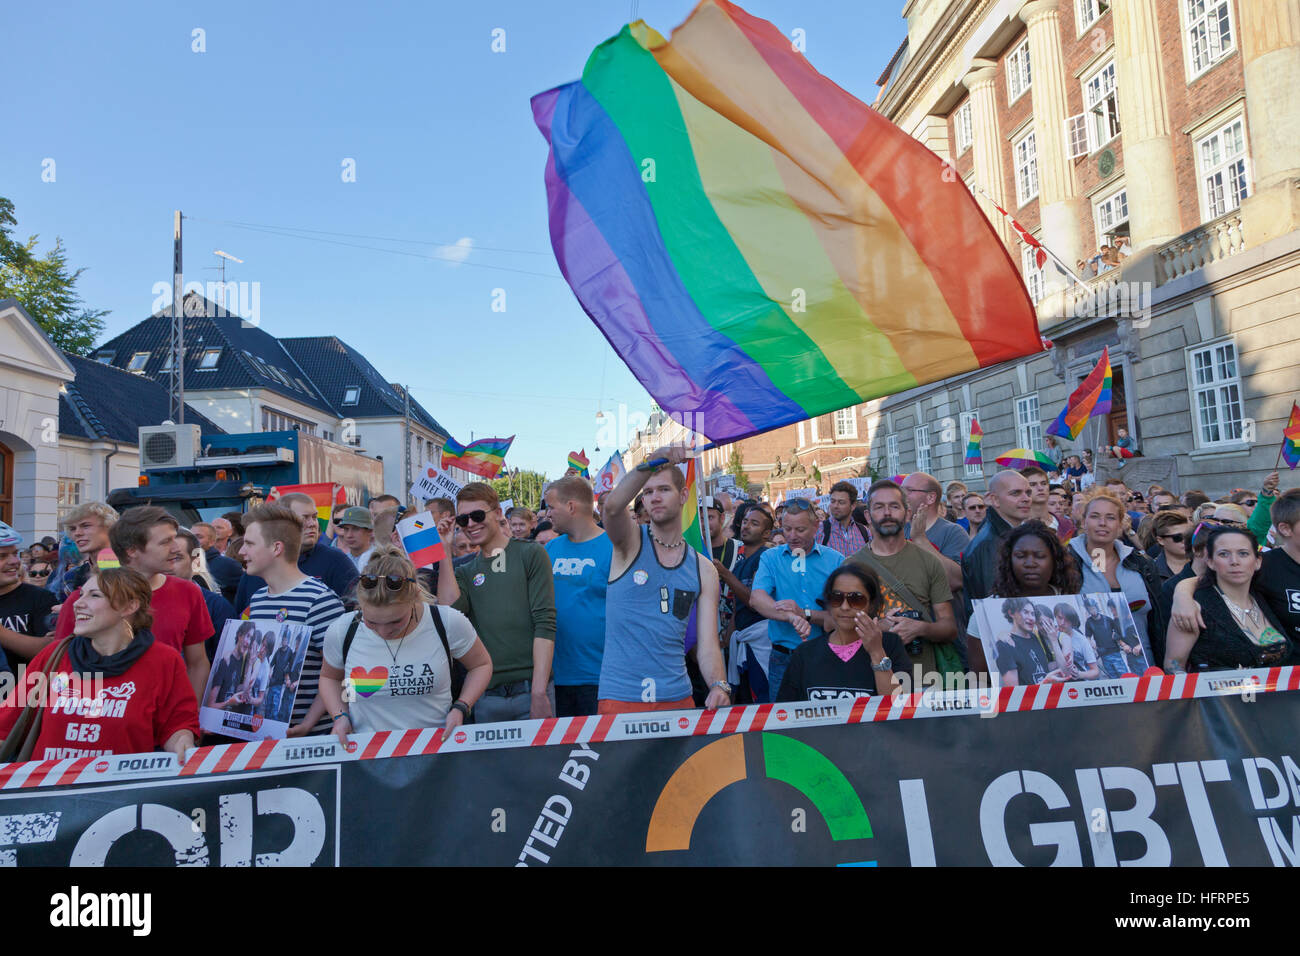 Aug. 20 2013 - 10,000 people demonstrate in Copenhagen outside the Russian Embassy against the Russian anti-gay - Stock Image